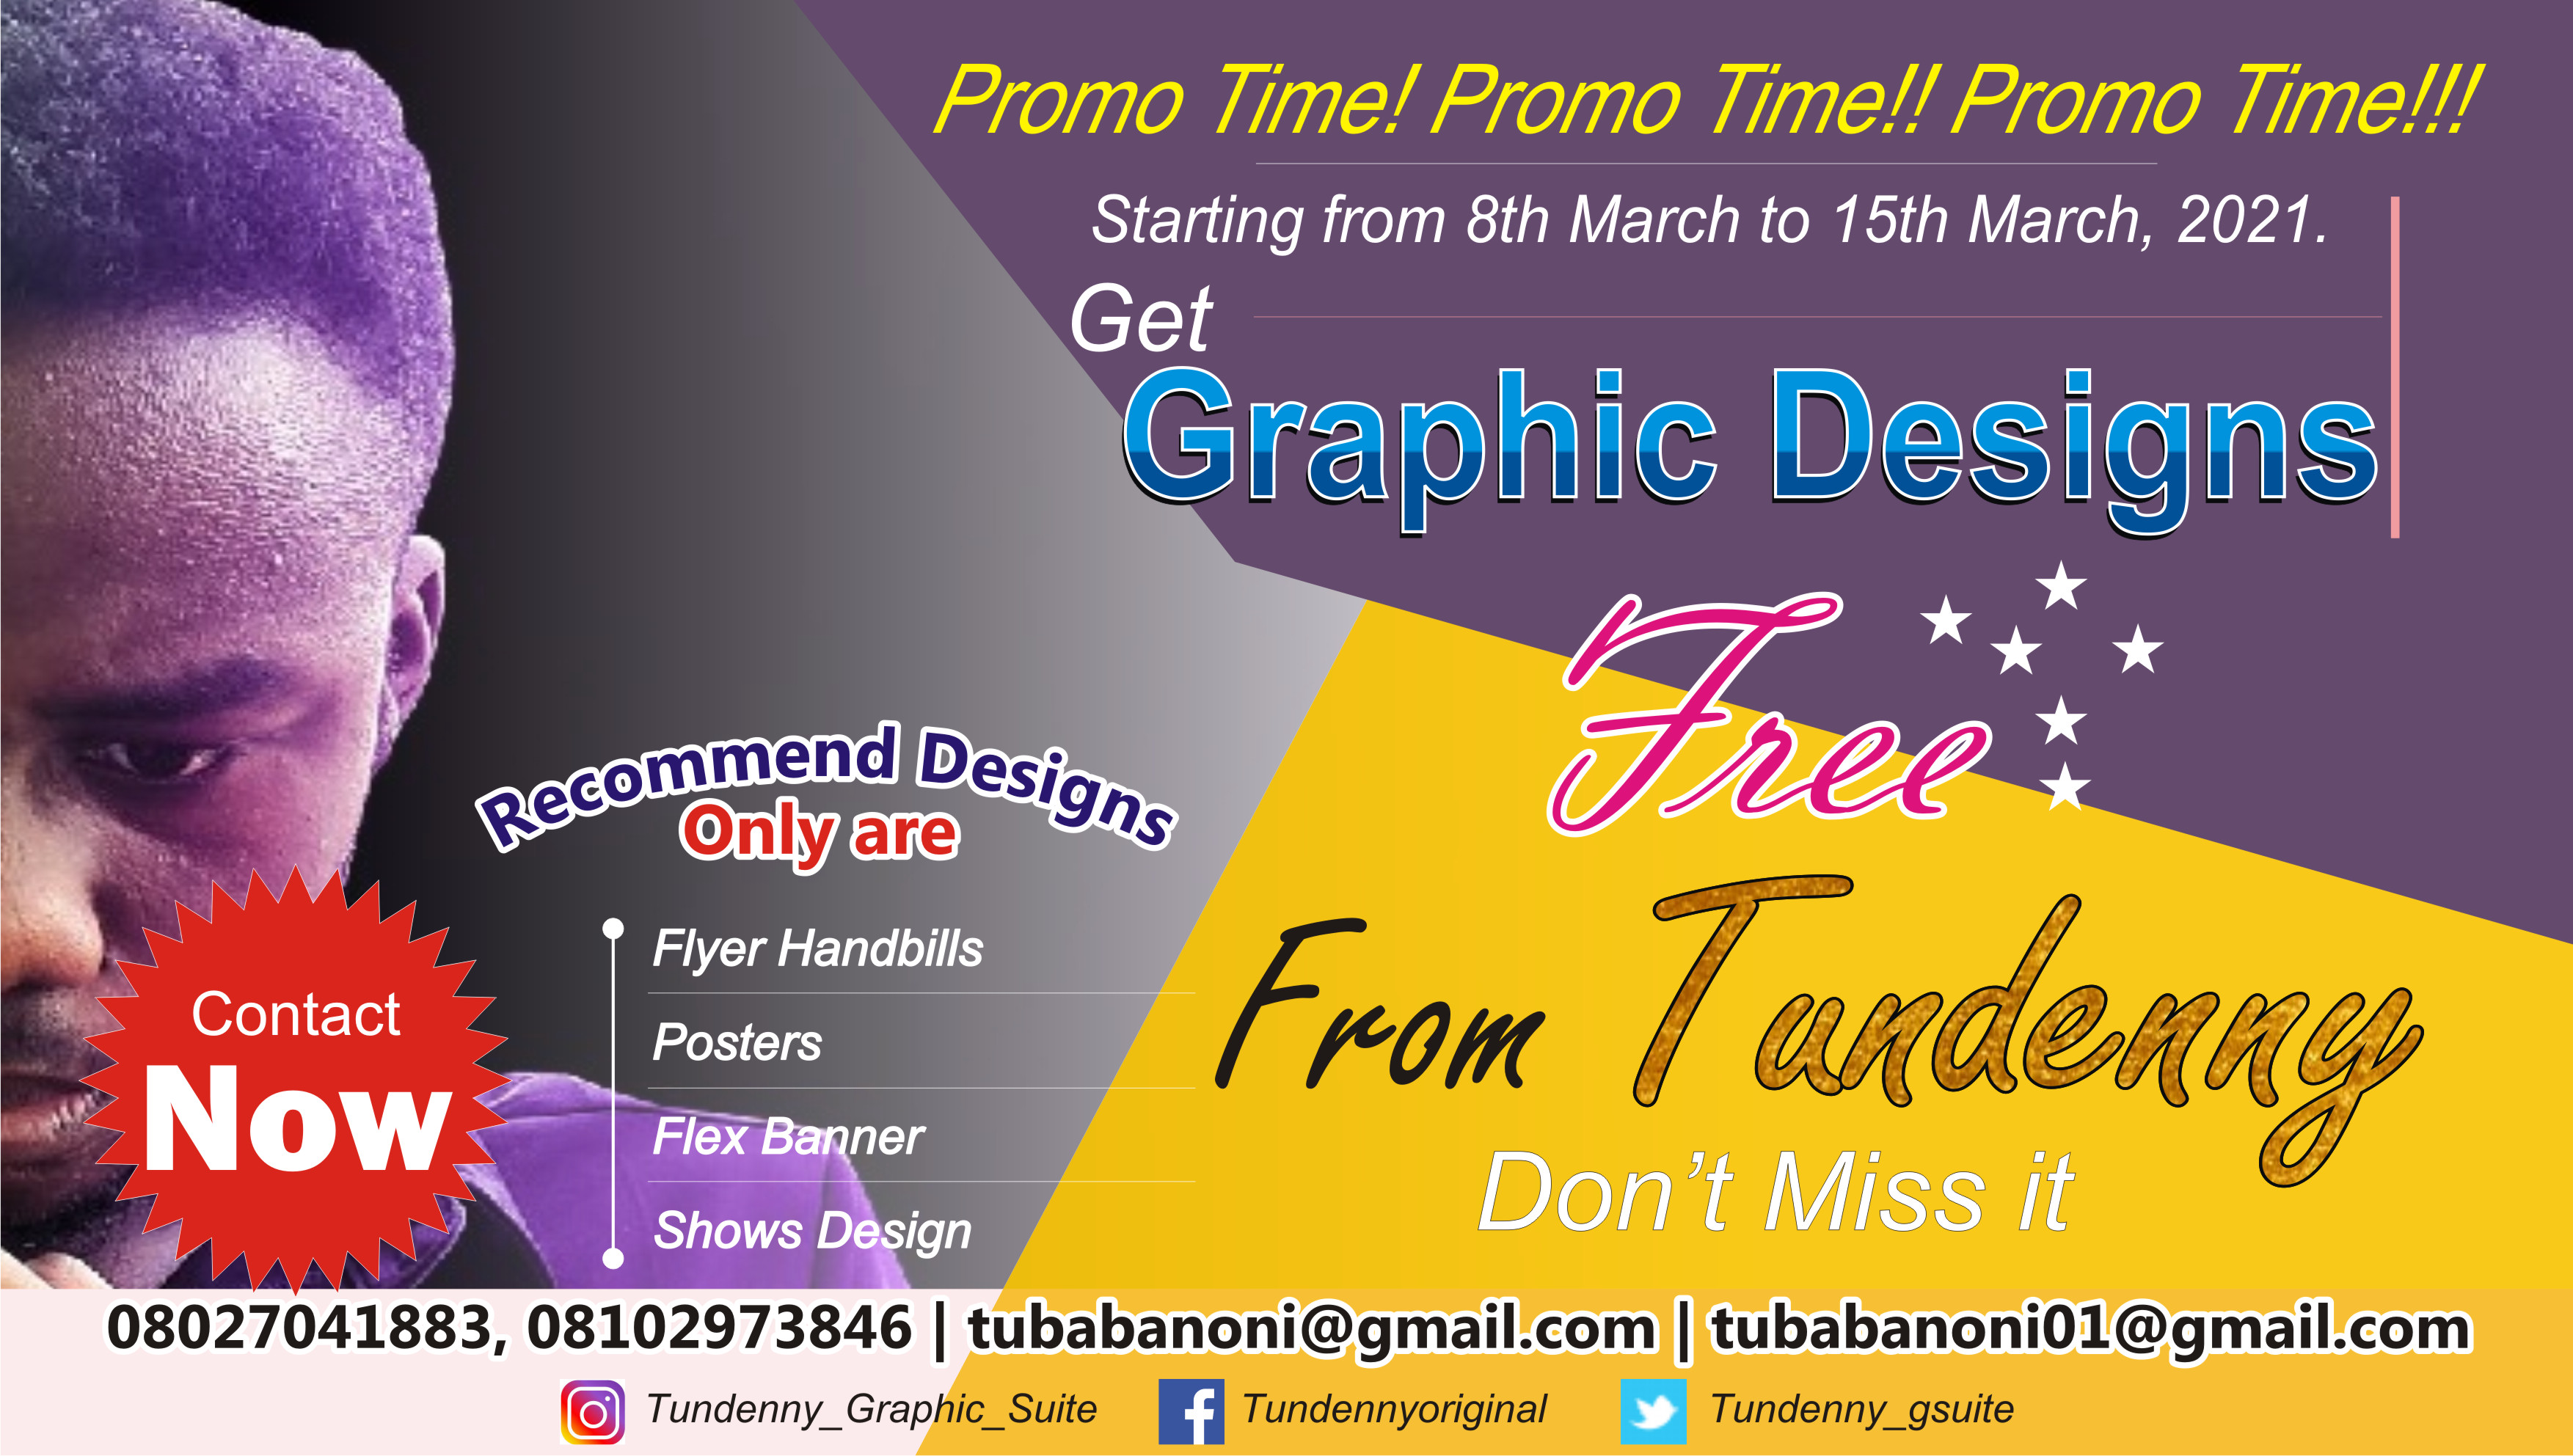 Free Graphic Designs From Tundenny